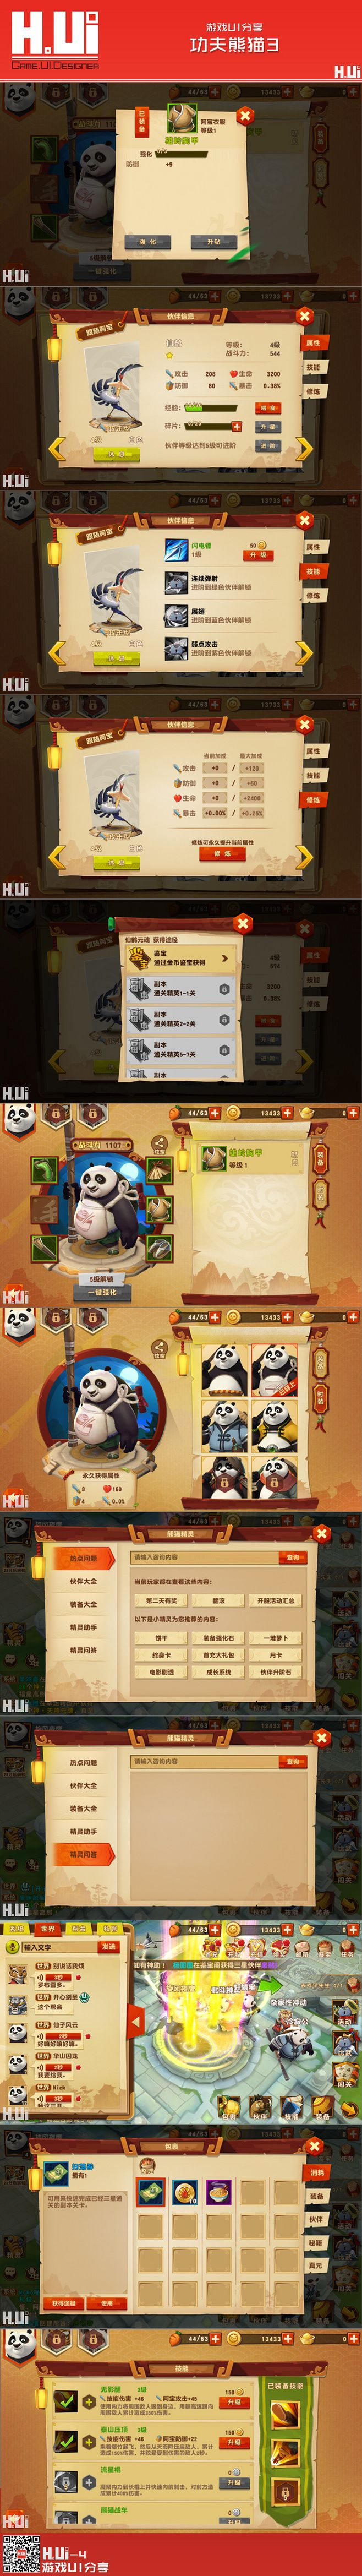 Kung Fu Panda 3 game hand travel UI # #